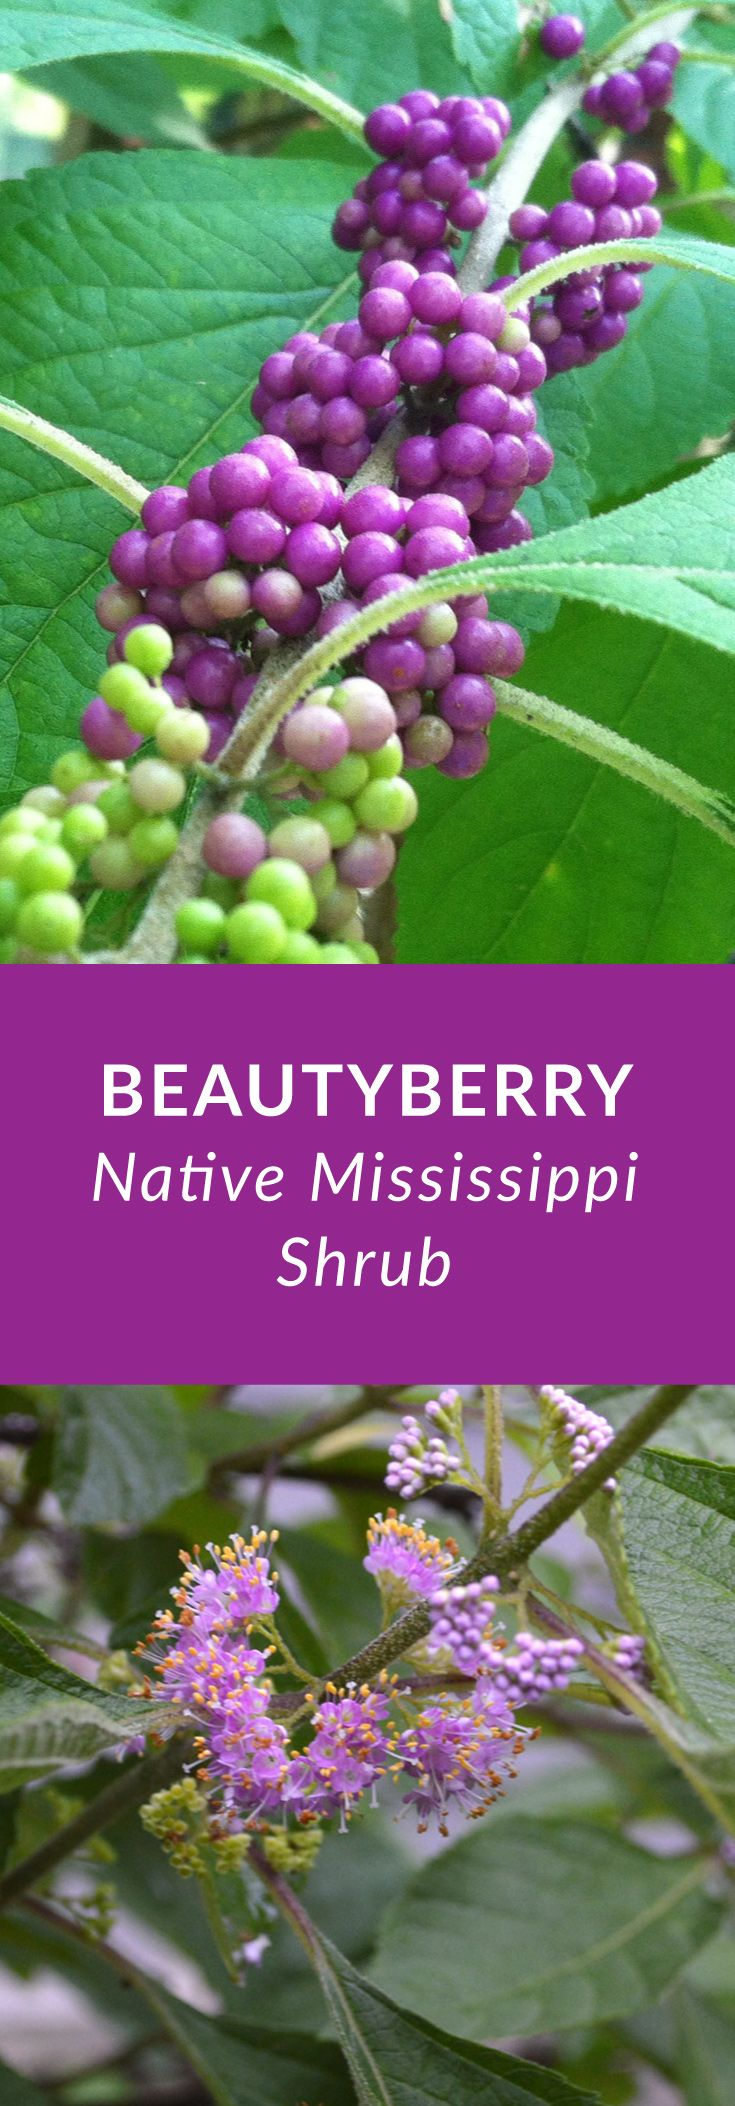 Beautyberry is a Mississippi perennial native shrub with small lavender flowers in summer & bright purple berries in late summer and fall.  via @tarawildlife